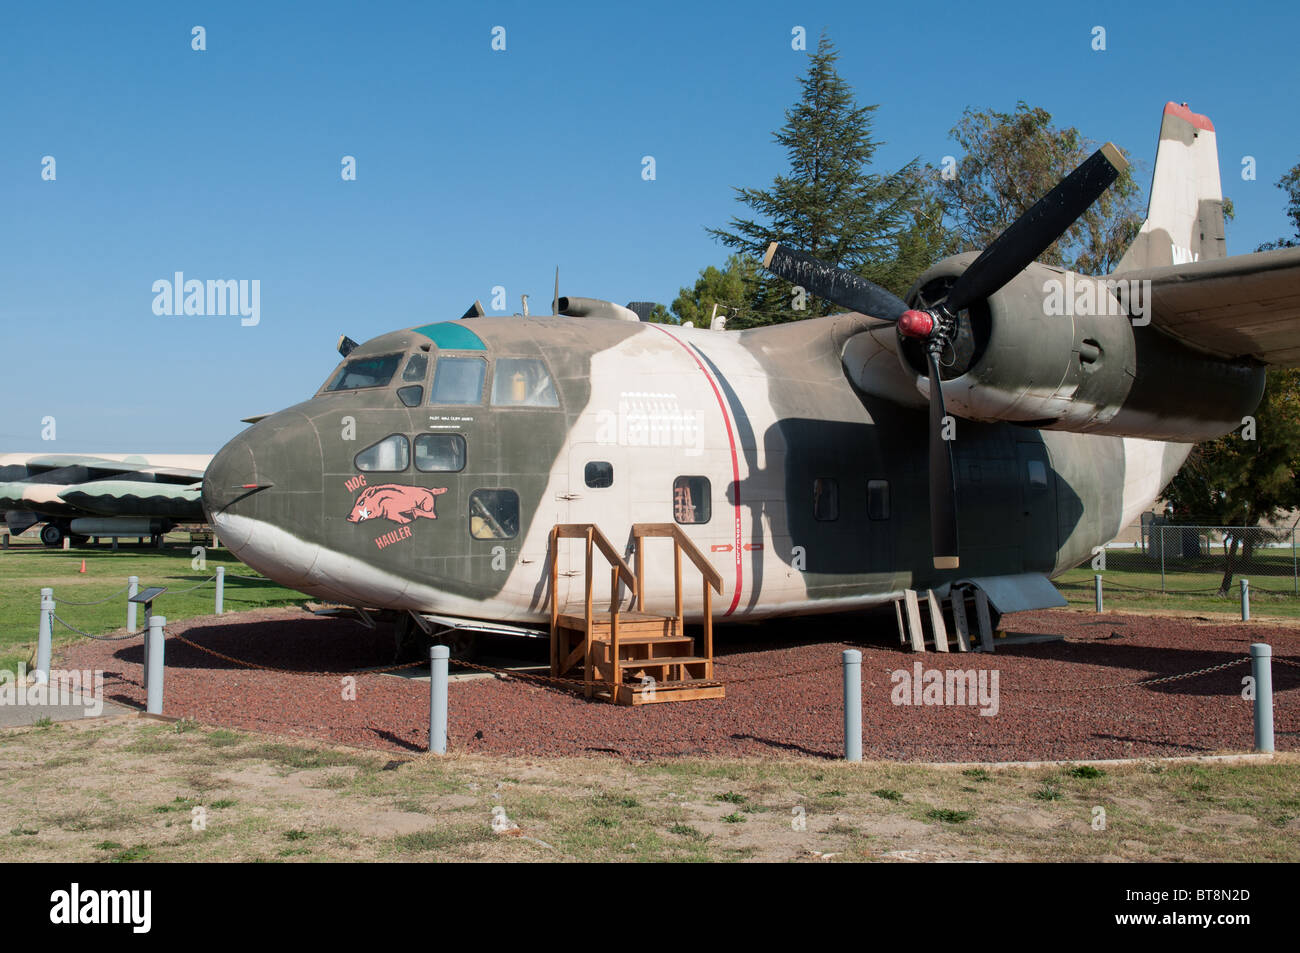 A C-123 Cargo plane at the Castle Air Museum, Merced California USA. - Stock Image